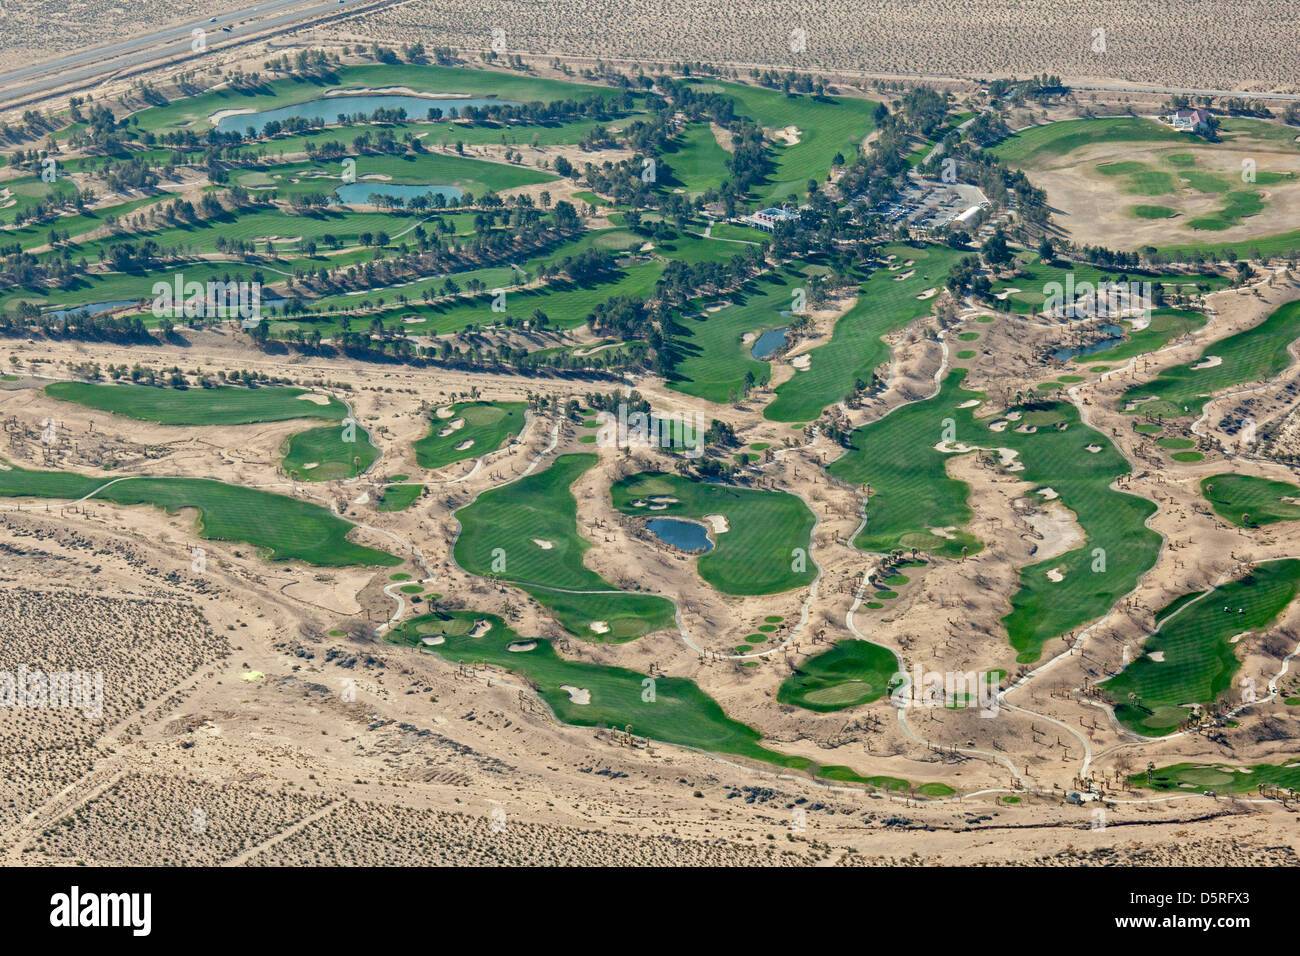 The Primm Valley Golf Club in the Mojave Desert. - Stock Image